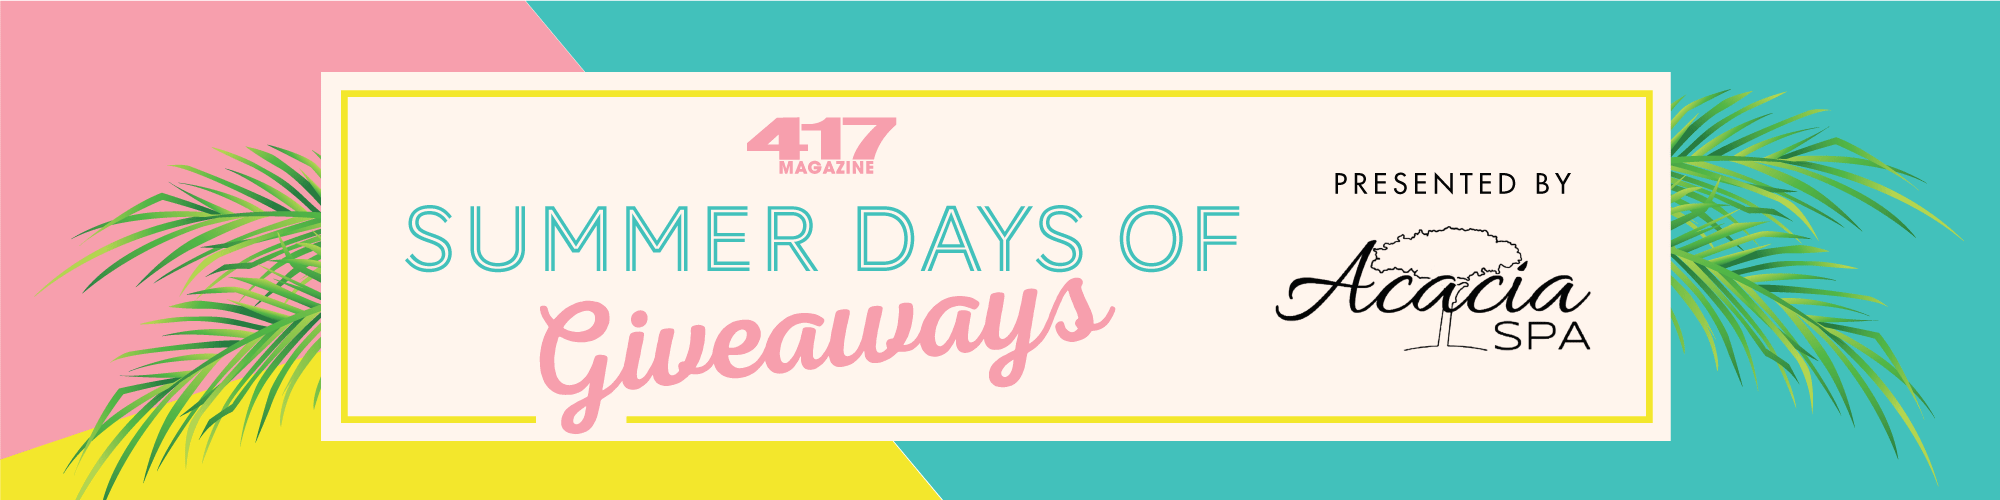 Wesh 14 days of giveaways and sweepstakes